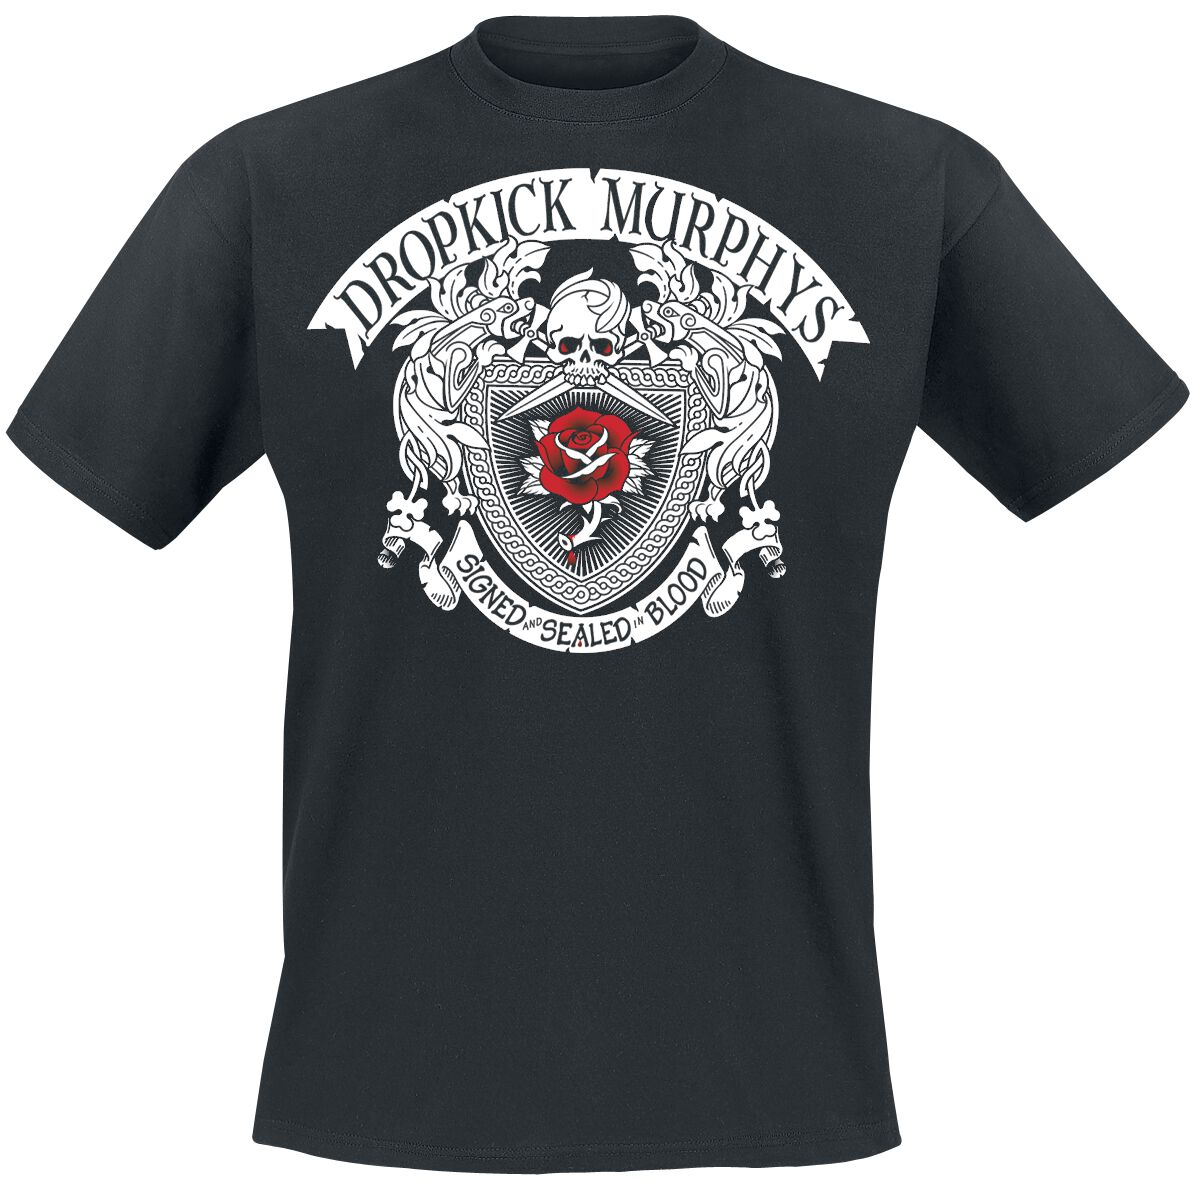 Zespoły - Koszulki - T-Shirt Dropkick Murphys Signed And Sealed In Blood T-Shirt czarny - 250060